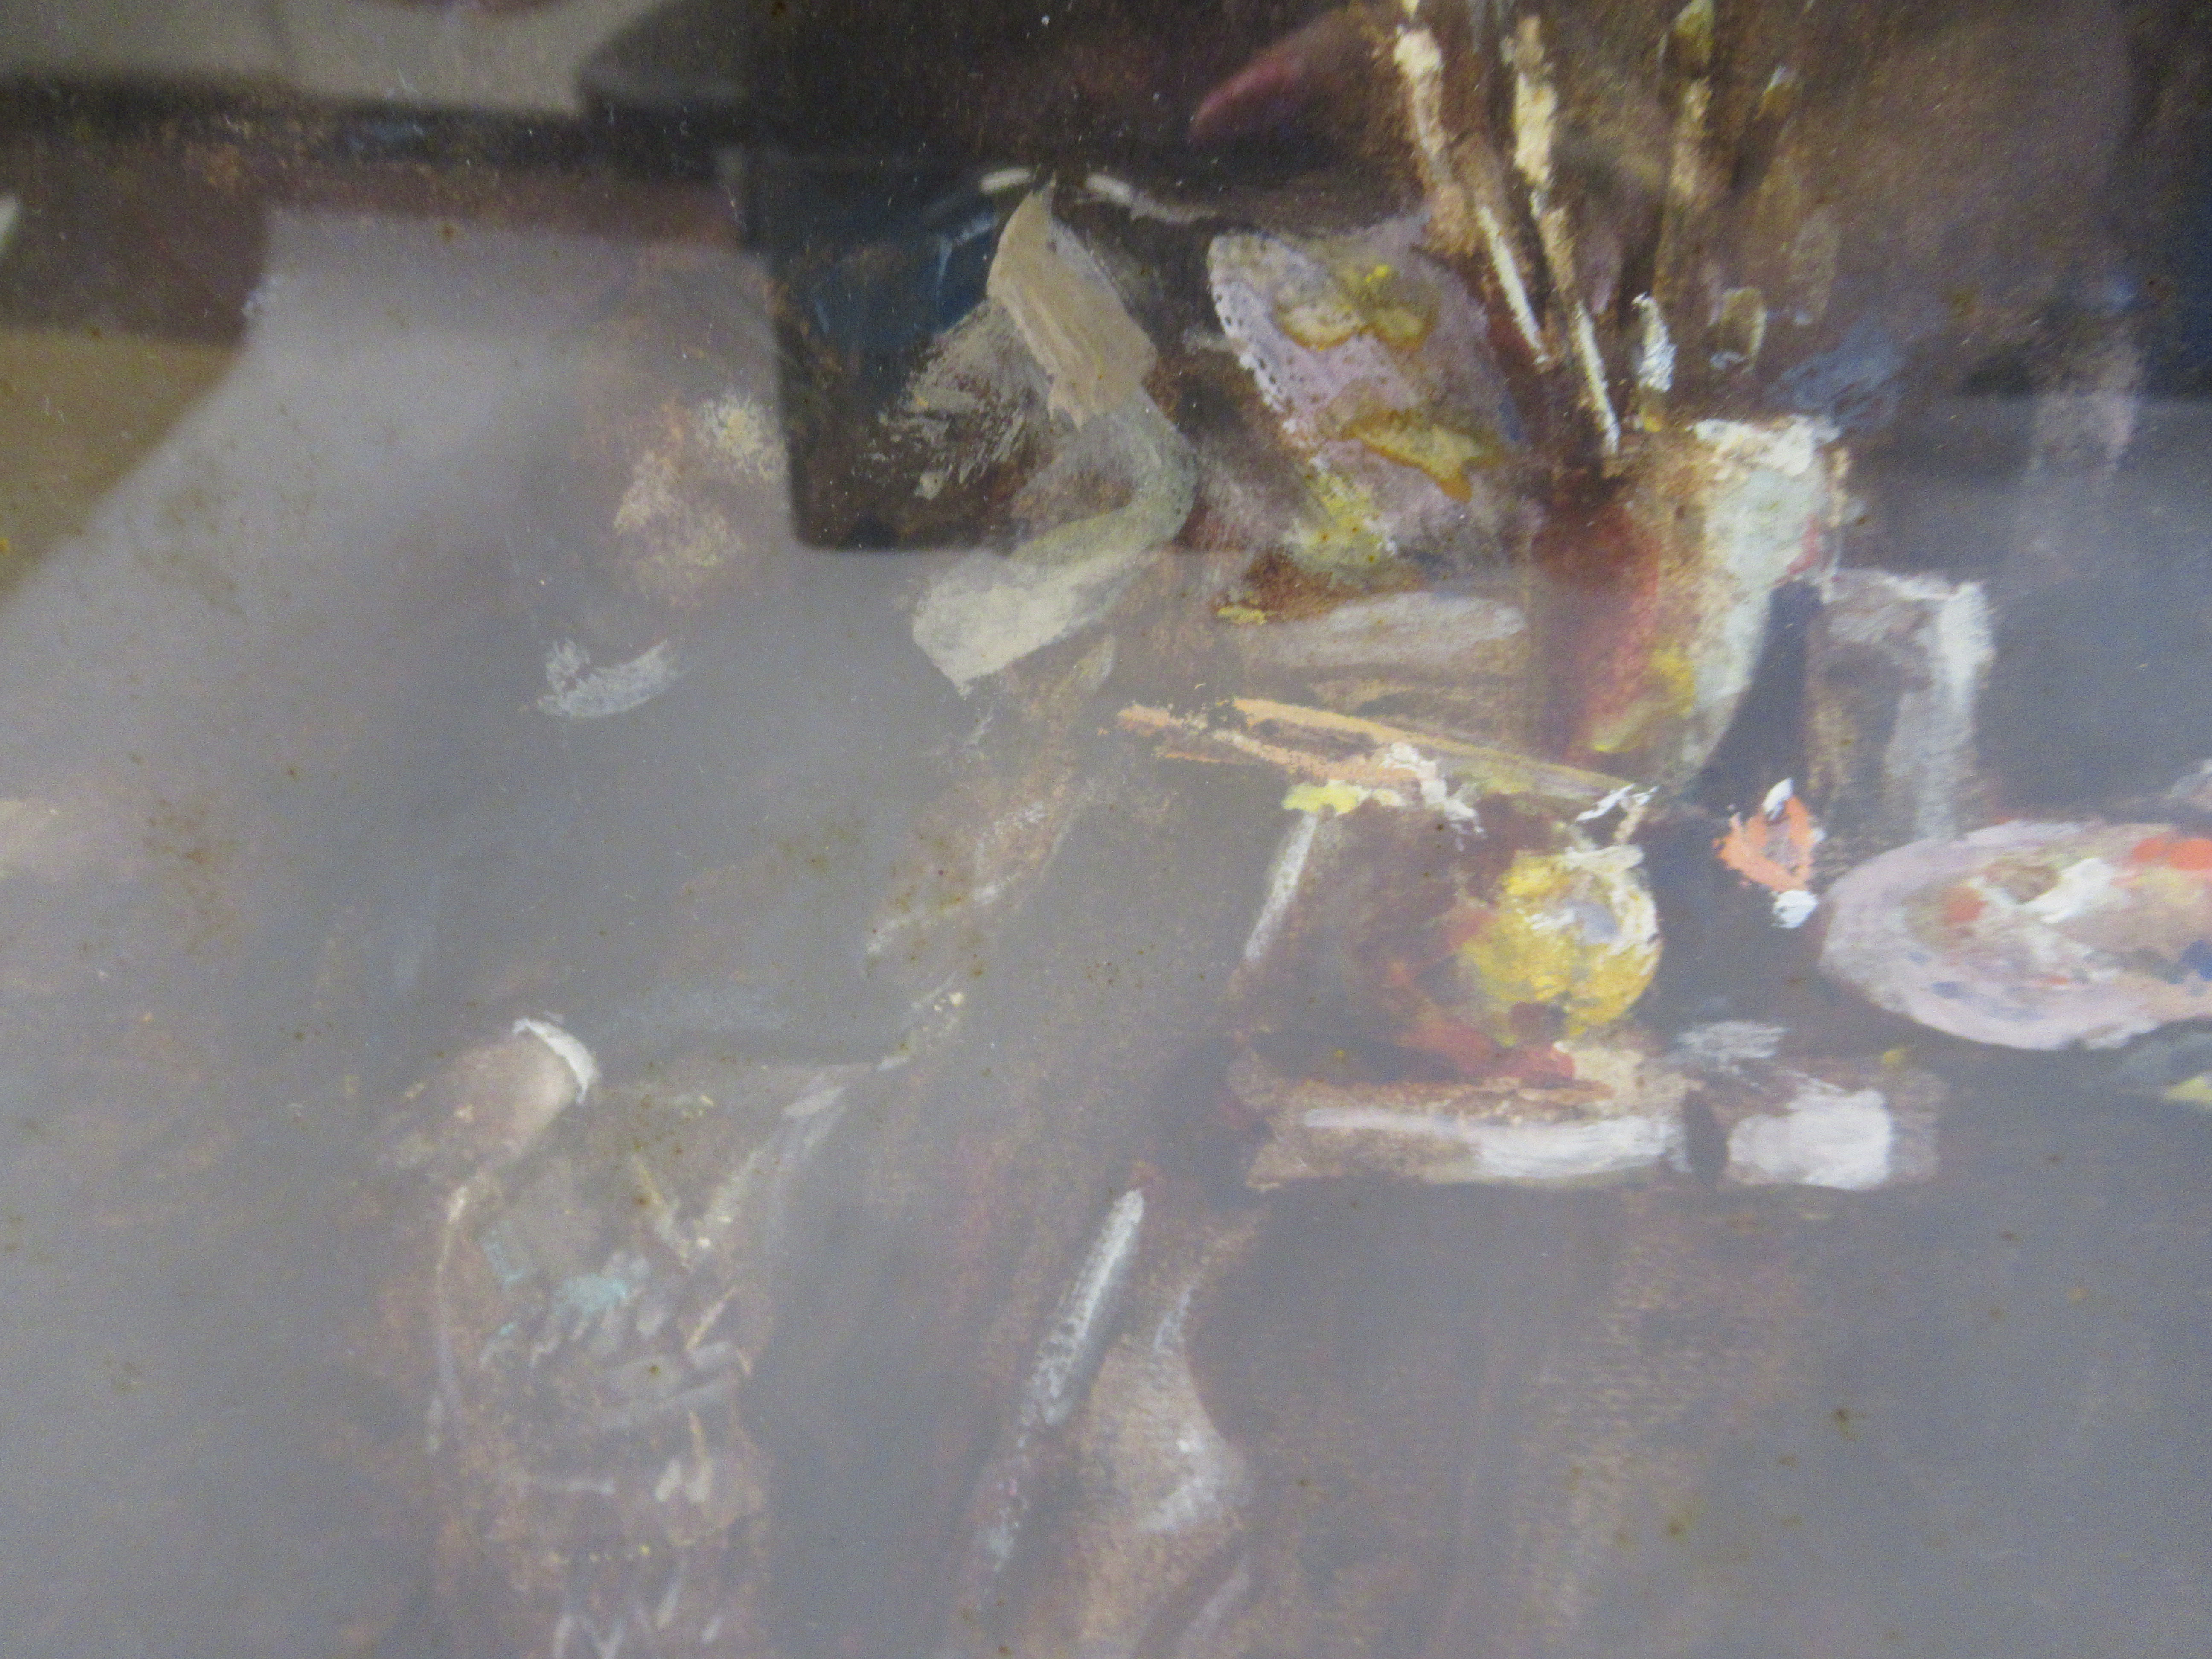 TW Morley - an interior studio scene with an artist resting in an armchair watercolour bears a - Image 4 of 7